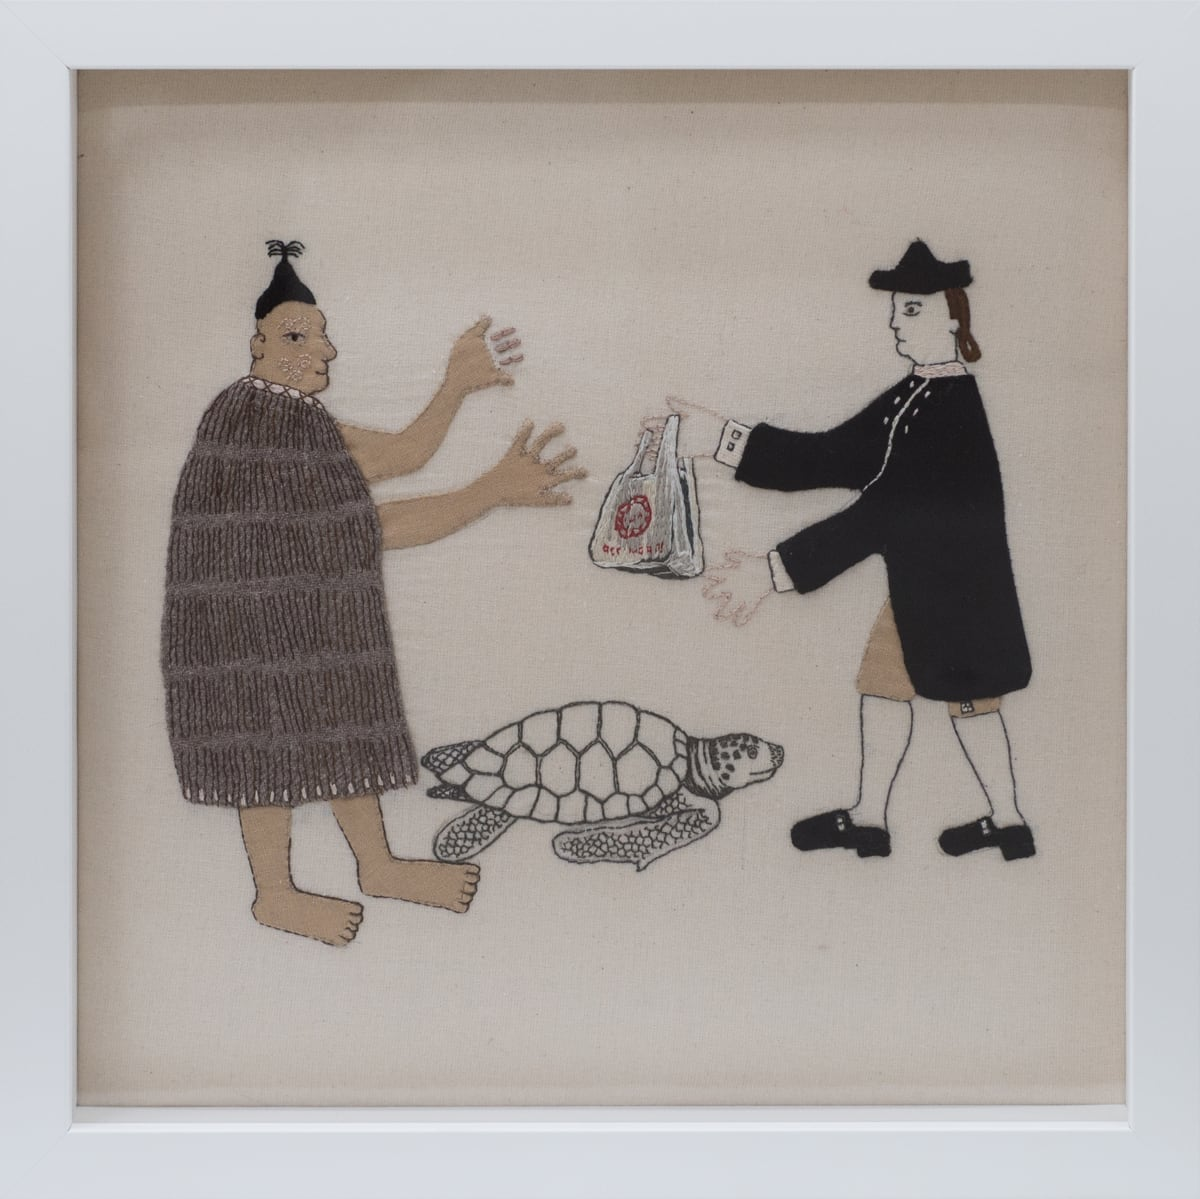 Sarah Munro, Trade Items: One-use plastic bag, Sea Turtle, 2018